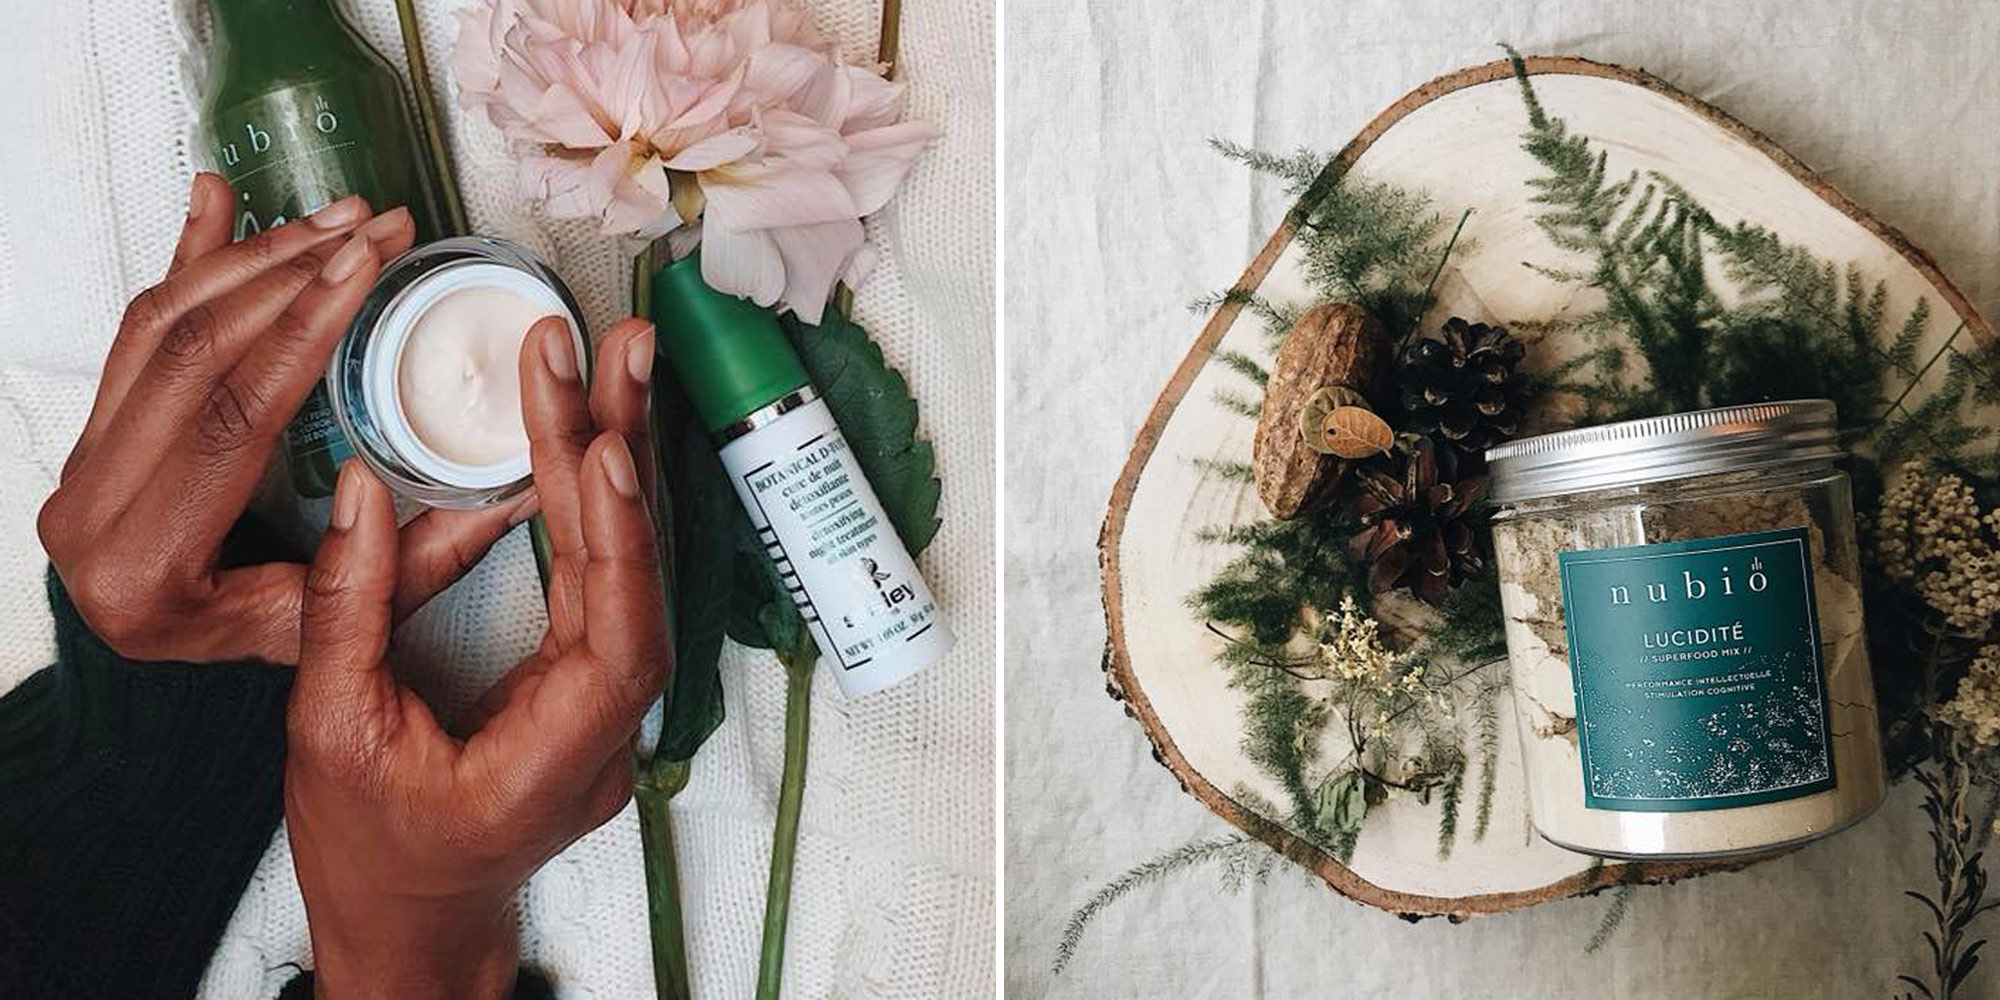 HiP Paris Blog Healthy Living Paris like the clean and green beauty products you can buy at Atelier Nubio (left) and a plant-based detox diet in powder form (right).